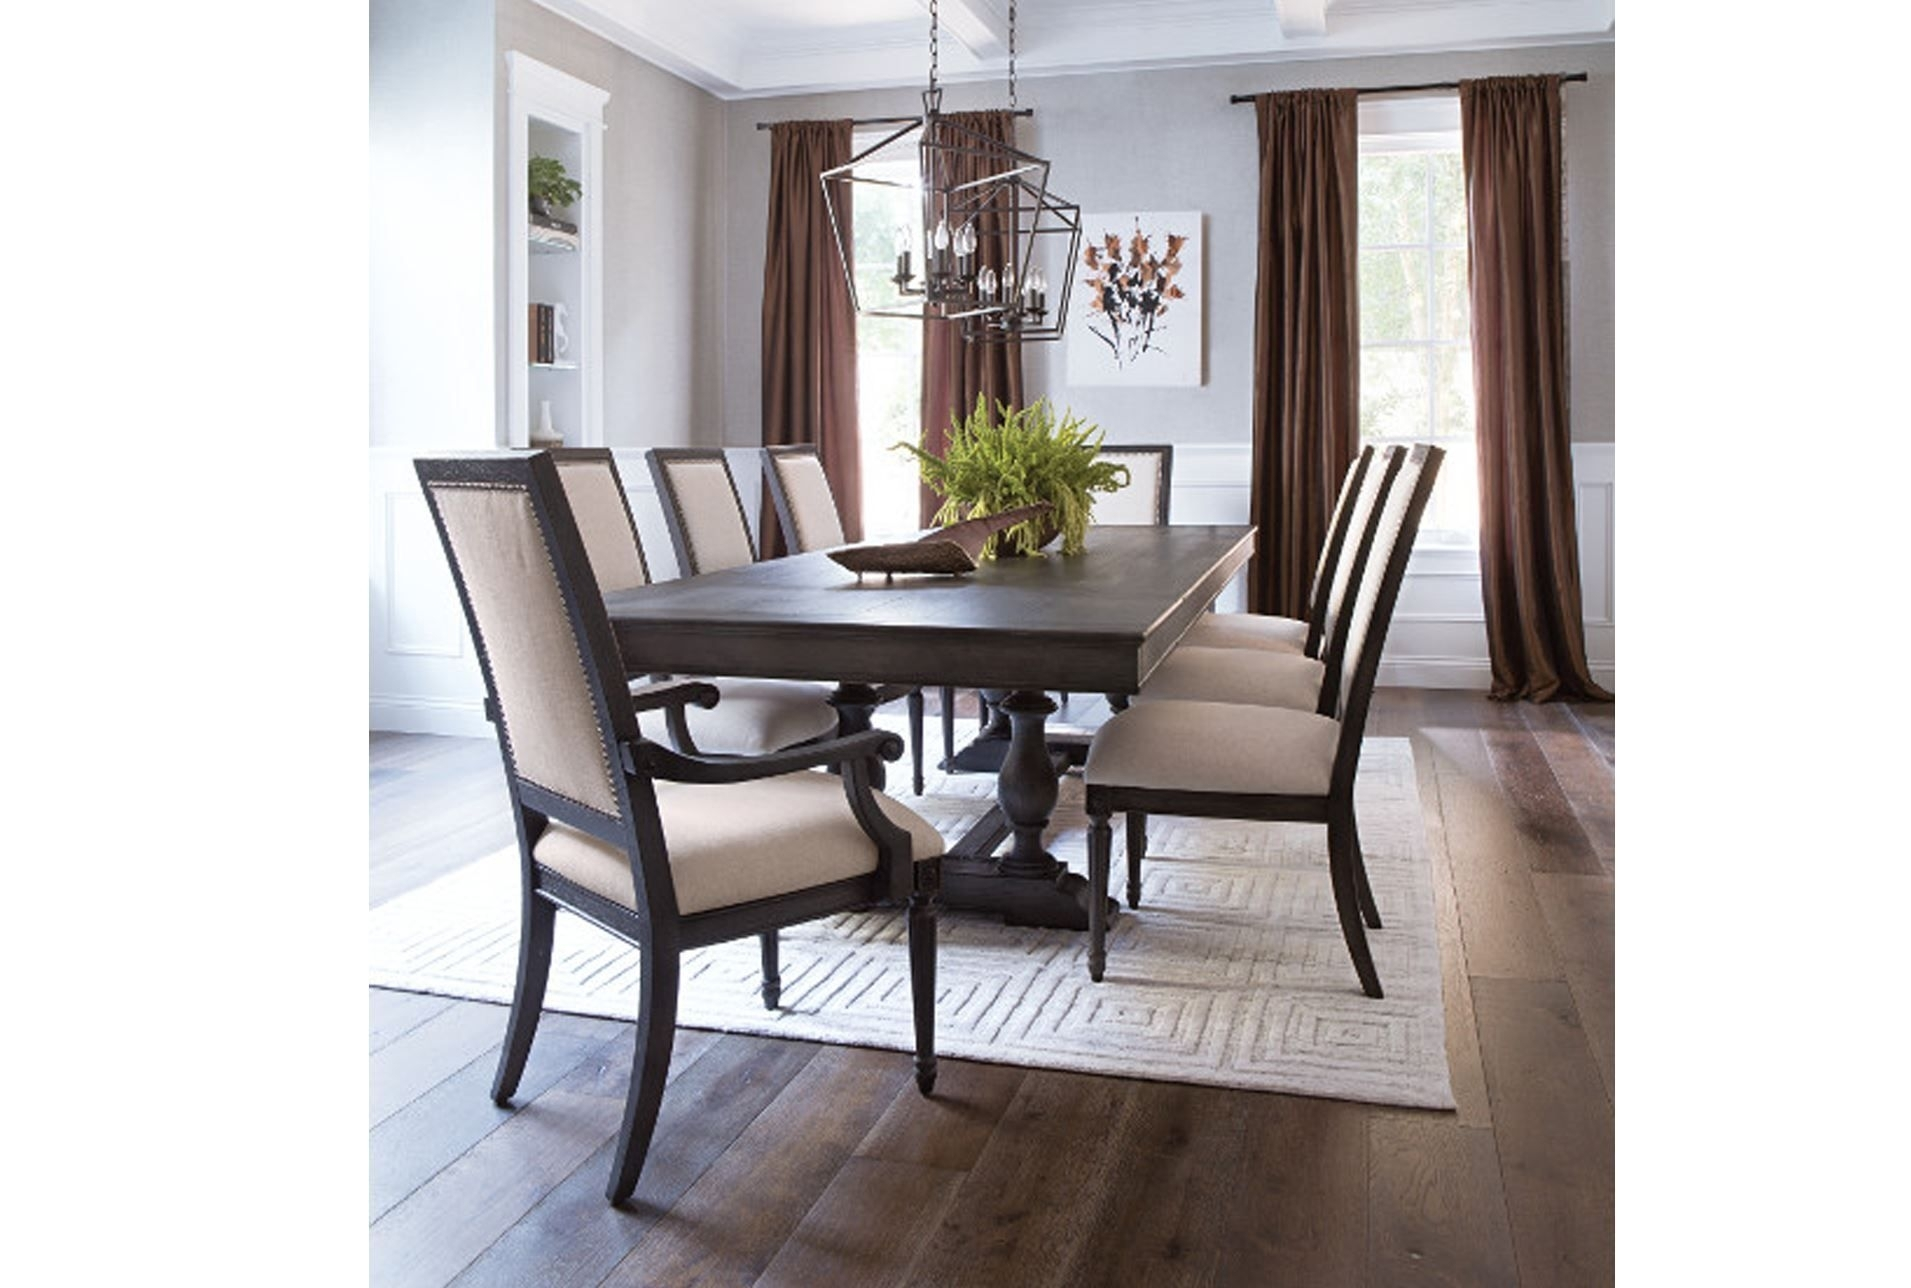 Chapleau Ii Arm Chairs For Famous Chapleau 9 Piece Extension Dining Set, Off White (View 8 of 20)